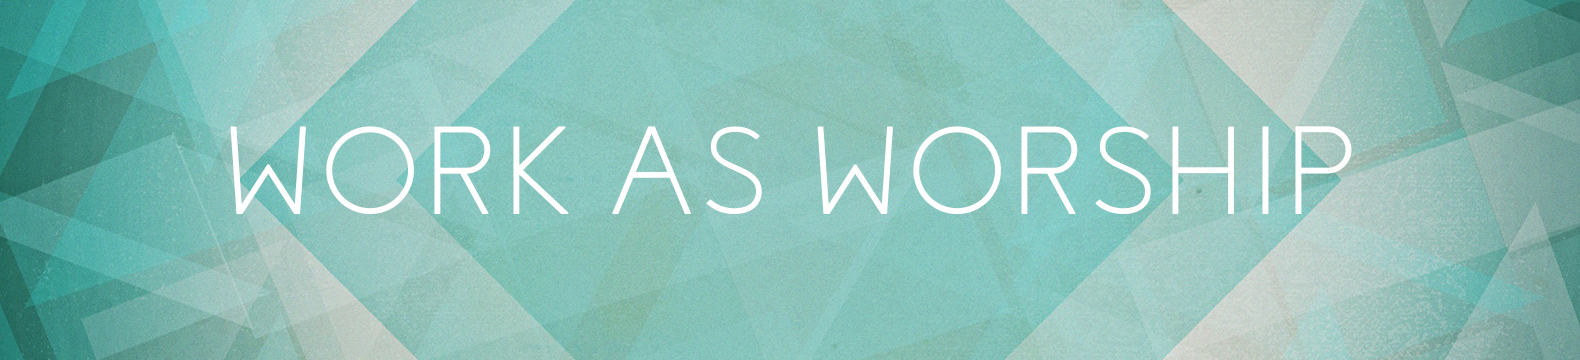 Community Group Guides: Work as Worship